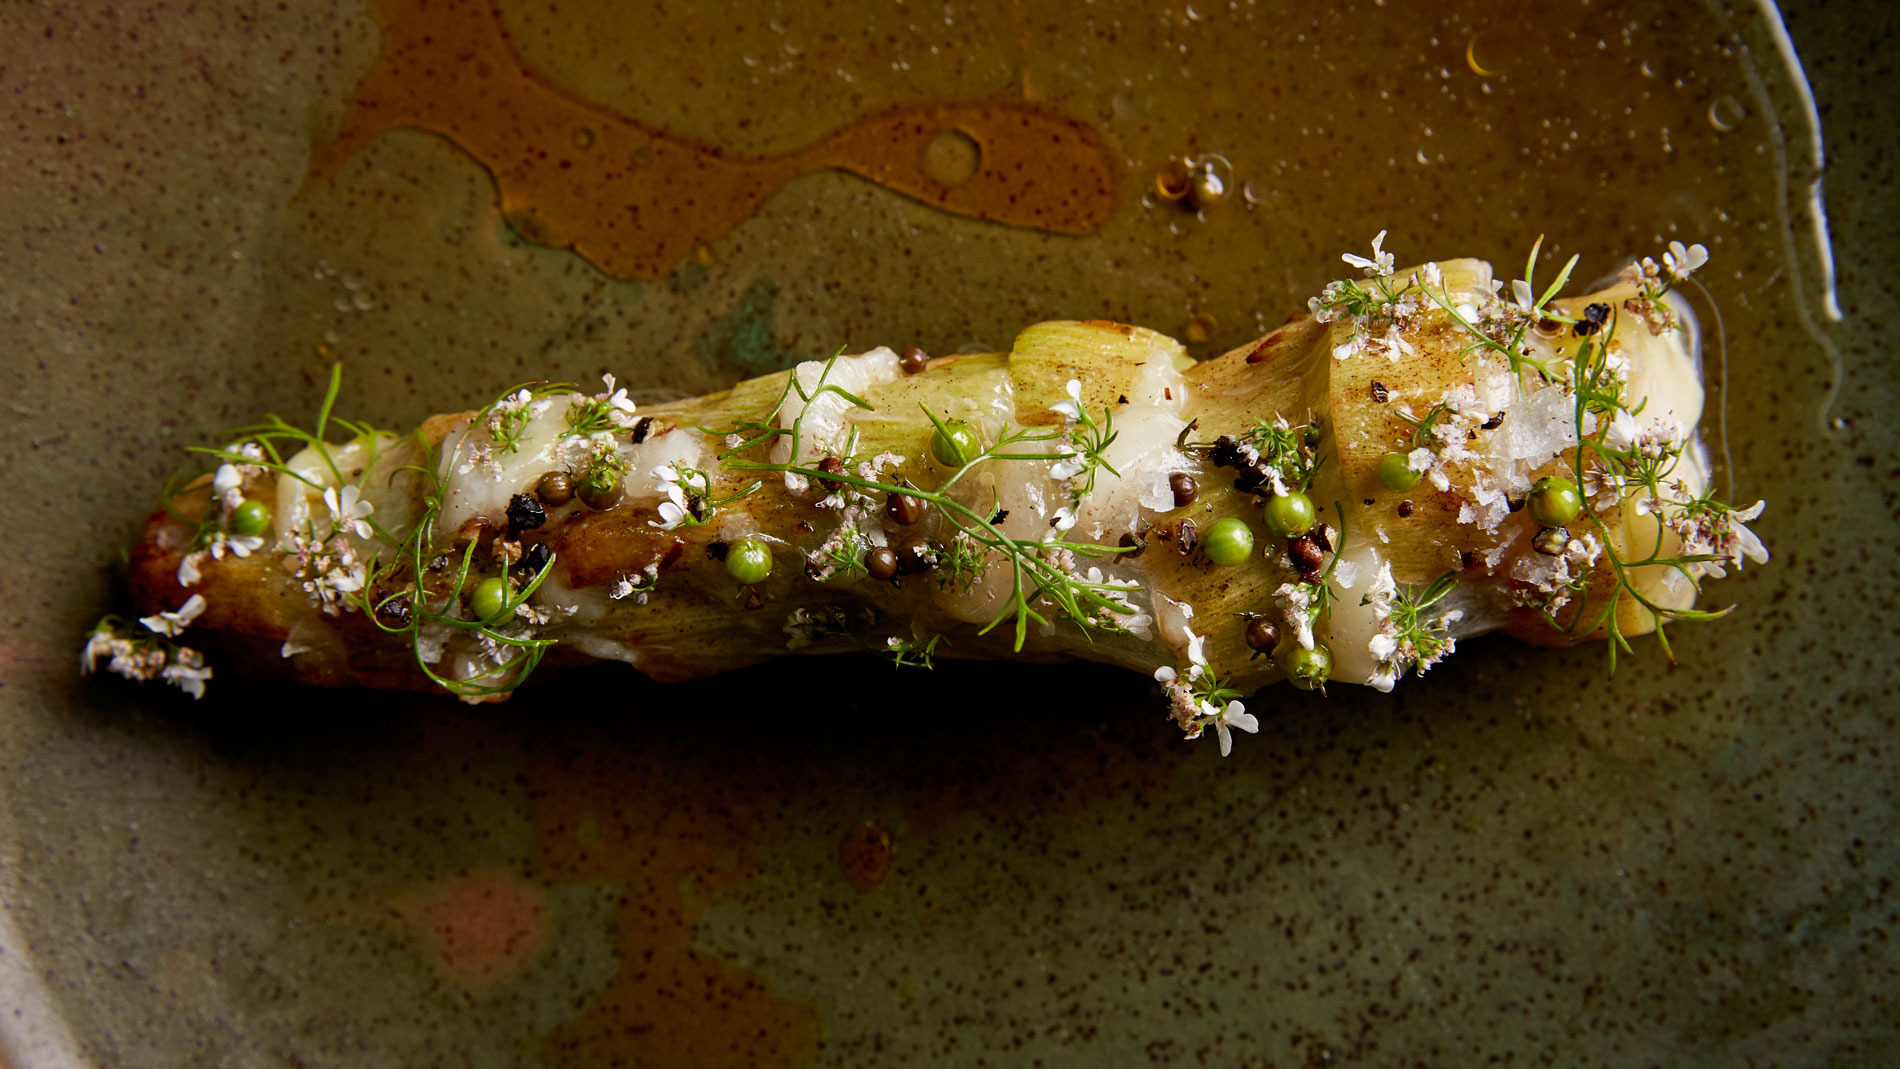 Broccoli Stems with Lardo & Fresh Coriander Seeds